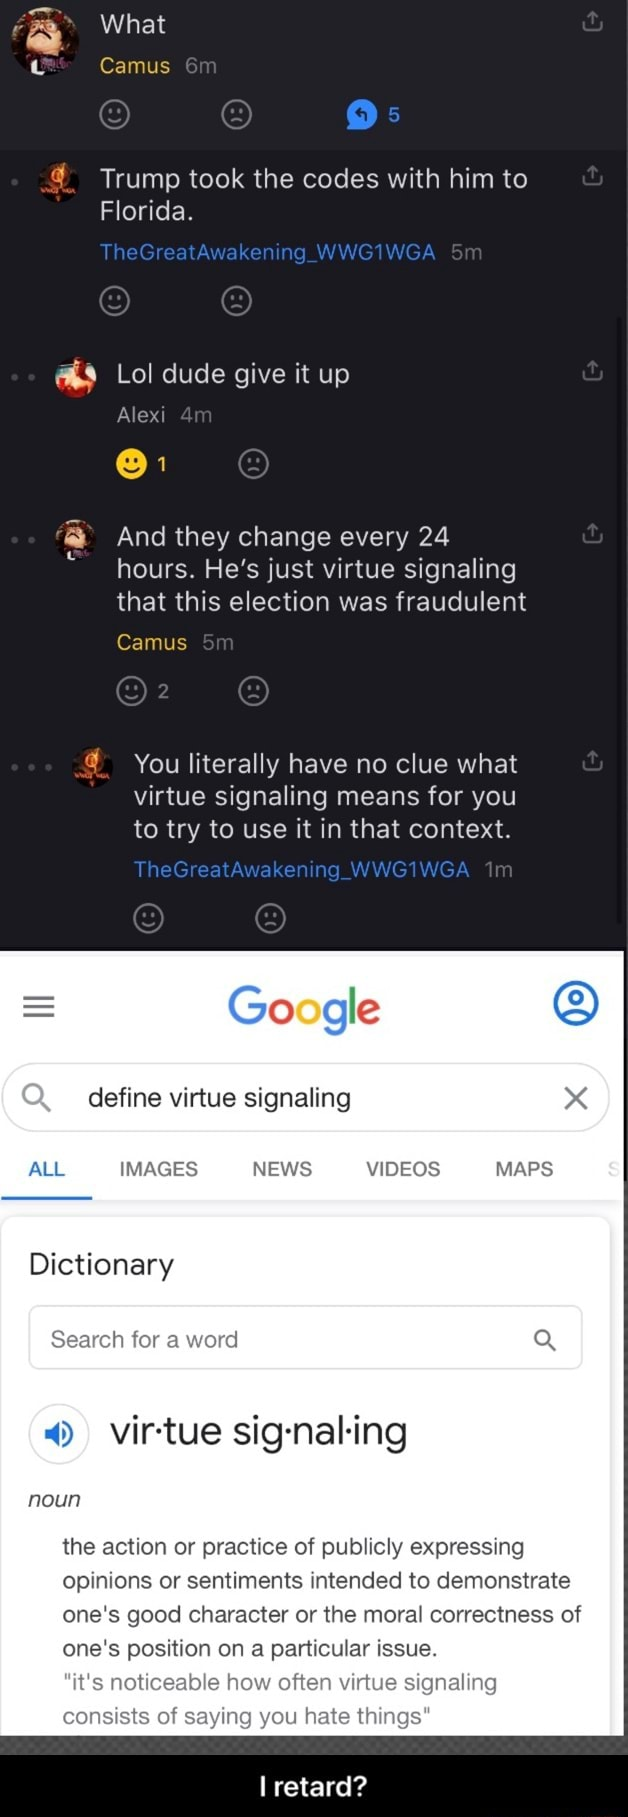 What Camus Trump took the codes with him to Florida. TheGrea Awaken WWGIWGA Lol dude give it up Alex And they change every 24 hours. He's just virtue signaling that this election was fraudulent Camus Sm You literally have no clue what virtue signaling means for you to try to use it in that context. TheGreatAwaker ng Google define virtue signaling IMAGES NEWS MAPS Dictionary ch for 4 virtue noun the action or practice of publicly expressing opinions or sentiments intended to demonstrate one's good character or the moral correctness of one's position on a particular issue. ten virtt ling ou hate things retard I retard meme